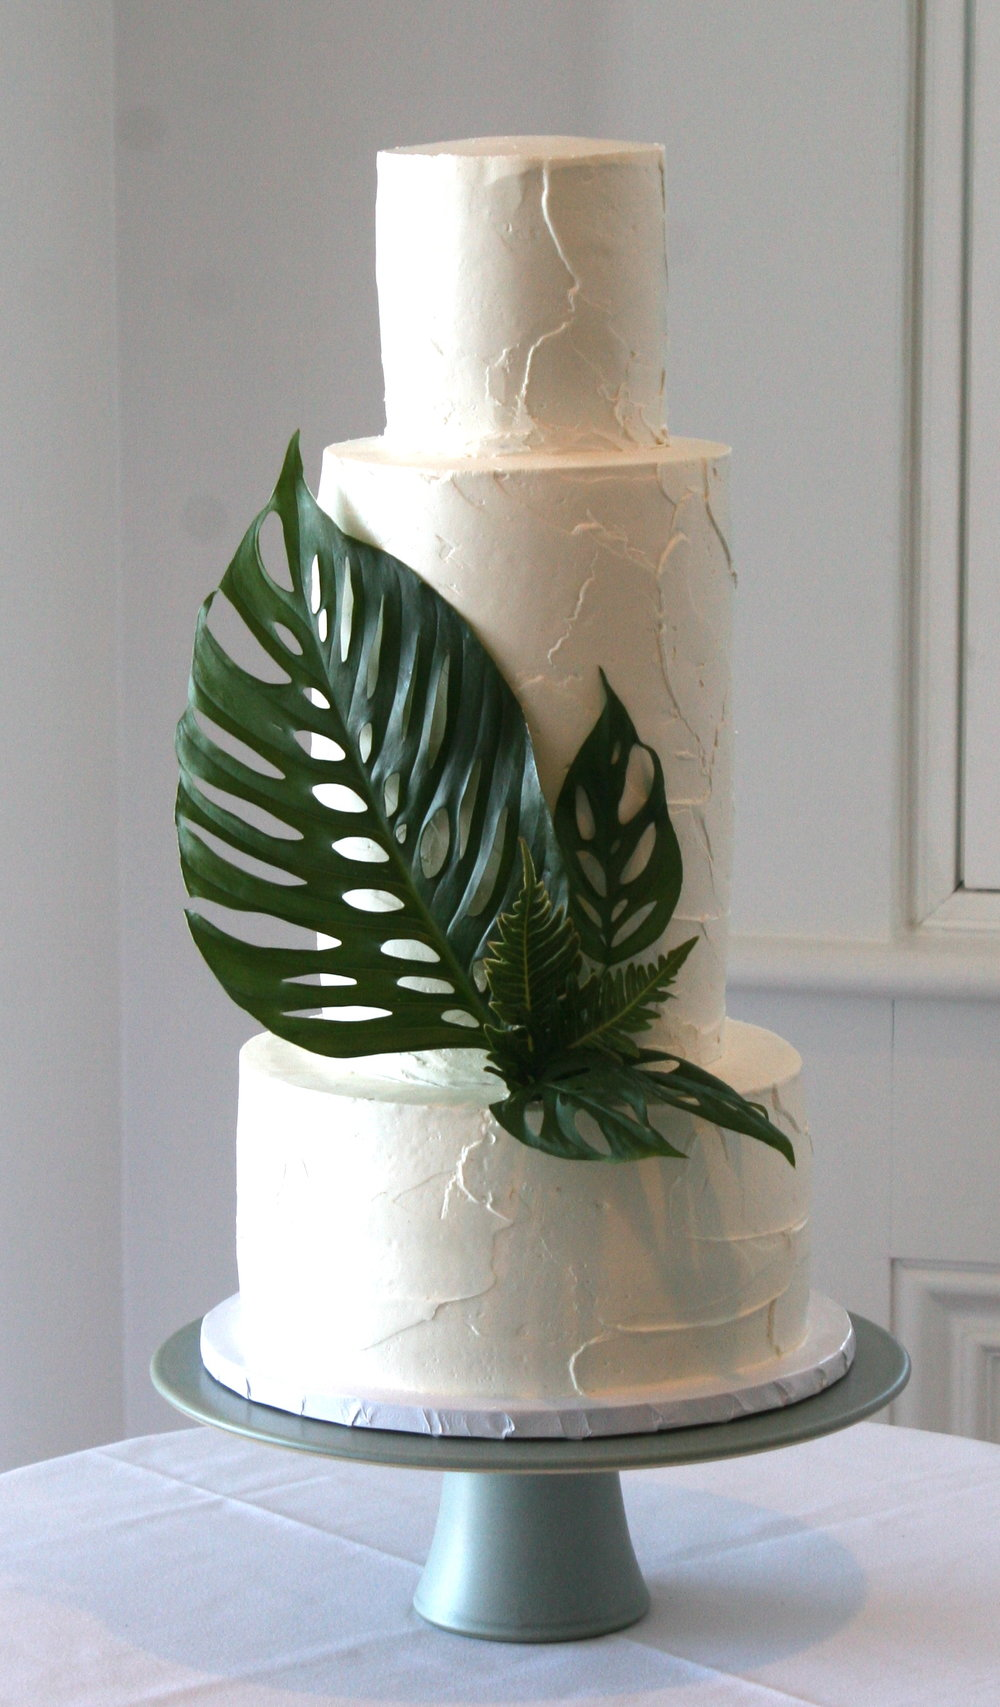 7 Fresh Greenery Ideas To Style Your Cake | Monsterra leaf cake by Cake Bloom